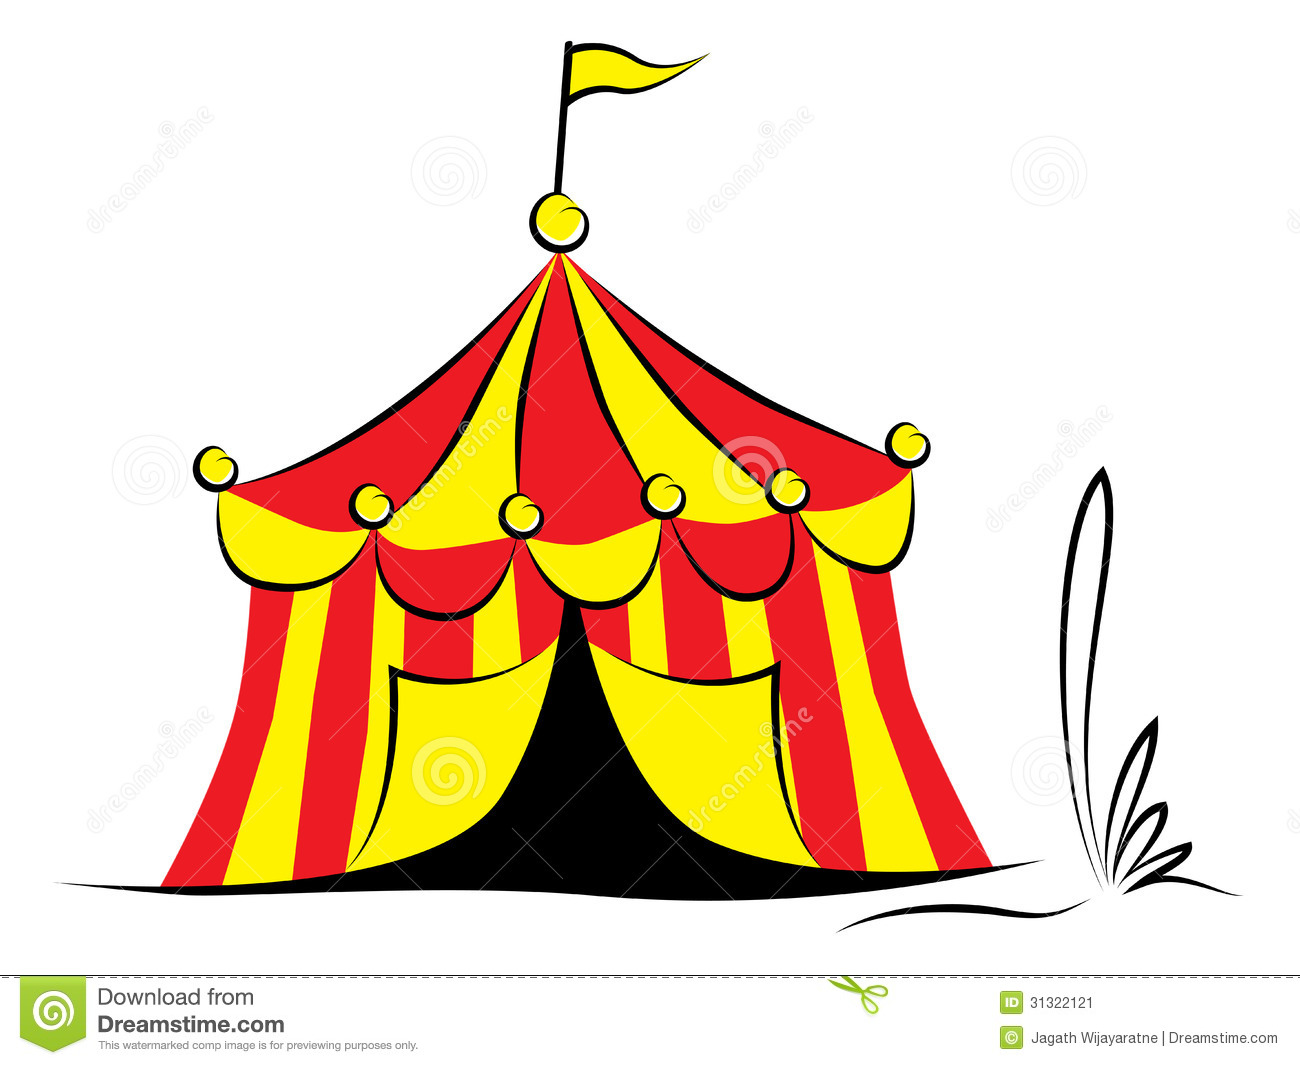 Circus tent with flag  sc 1 st  Dreamstime.com & Circus tent with flag stock vector. Illustration of architecture ...